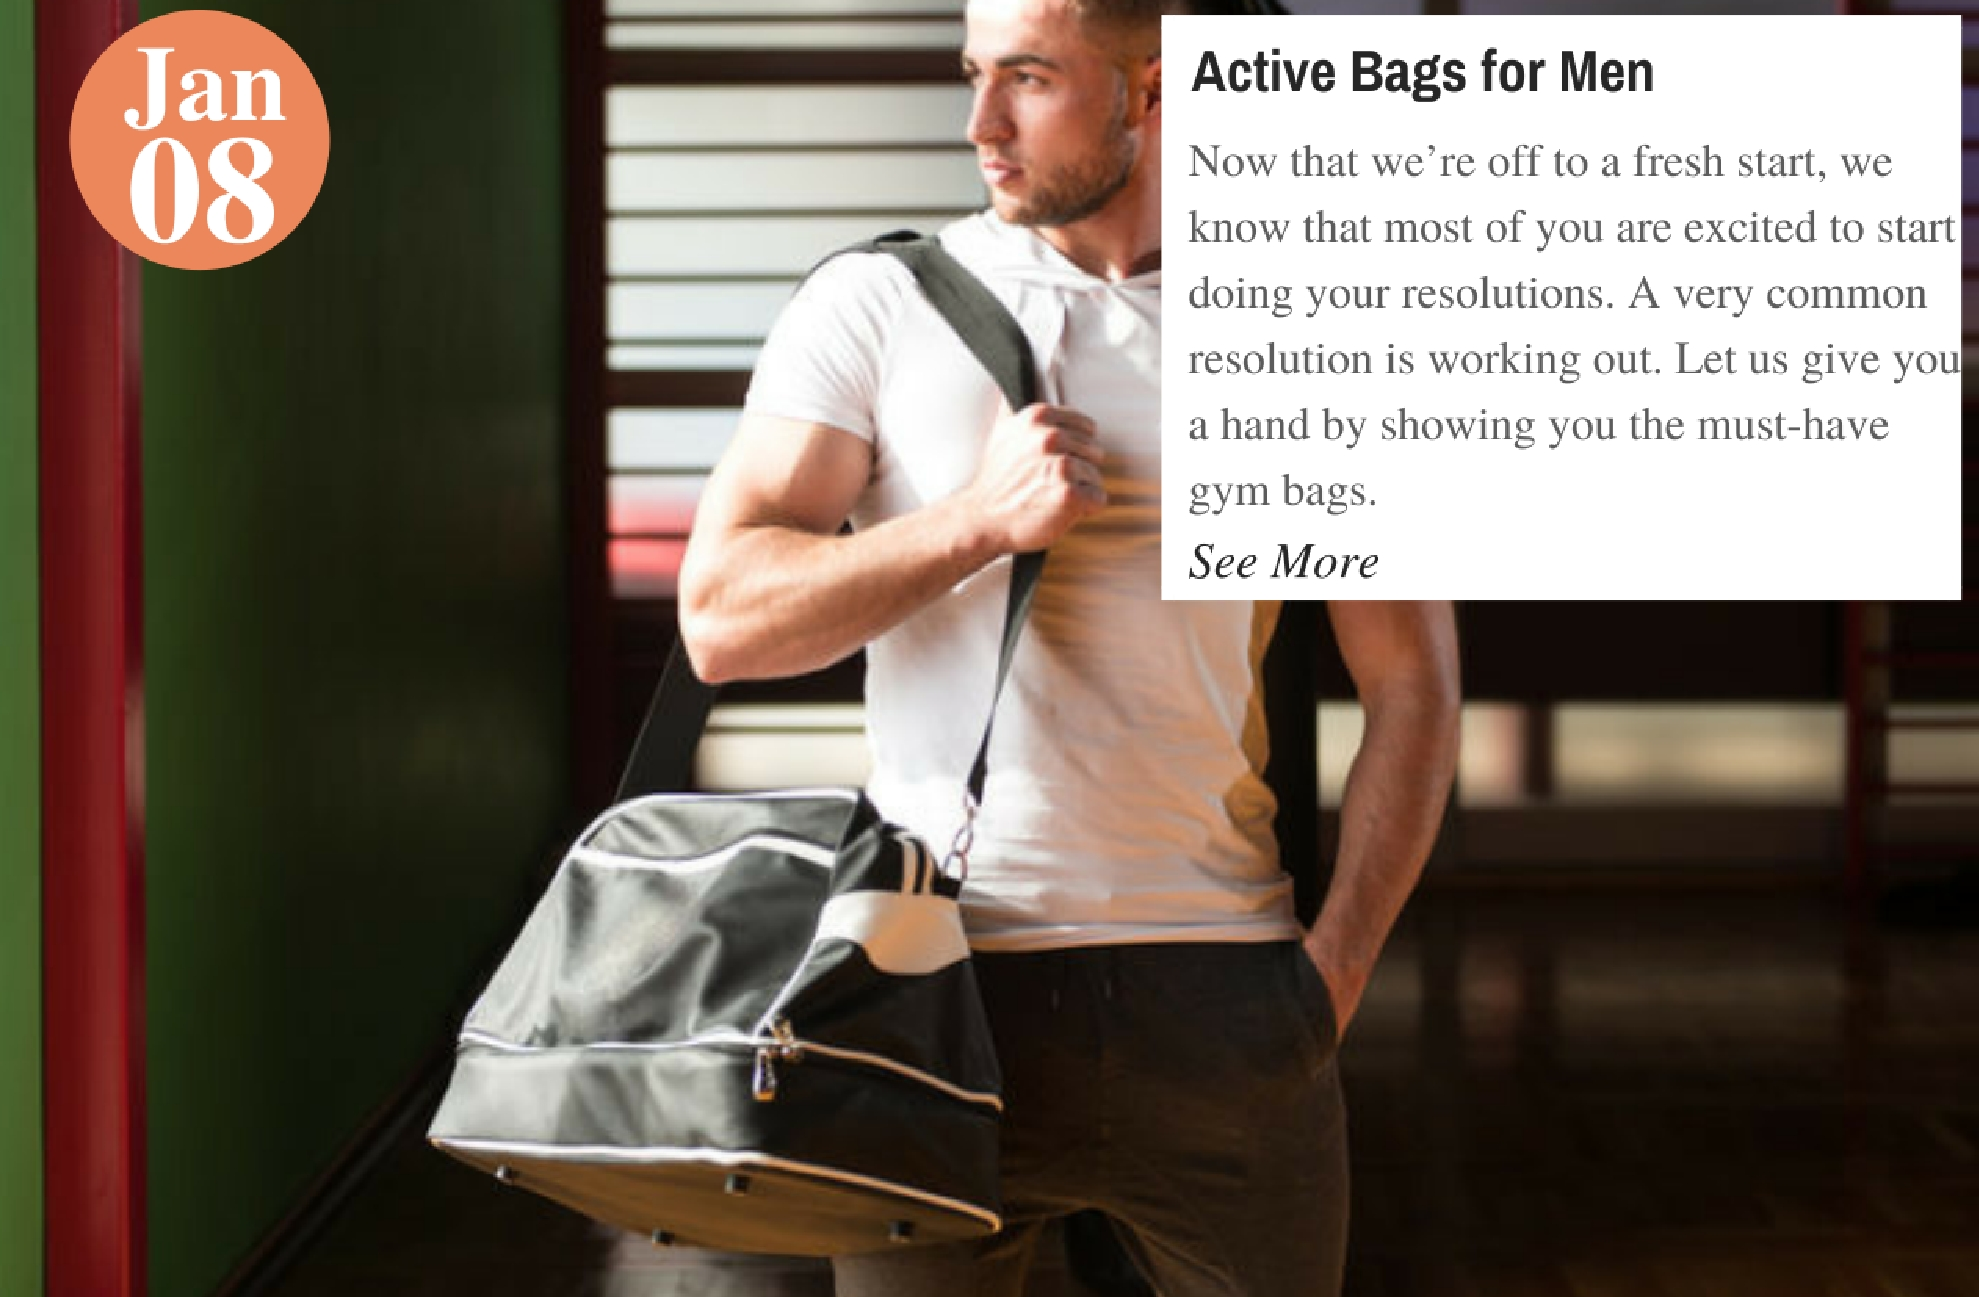 Active Bags for Men